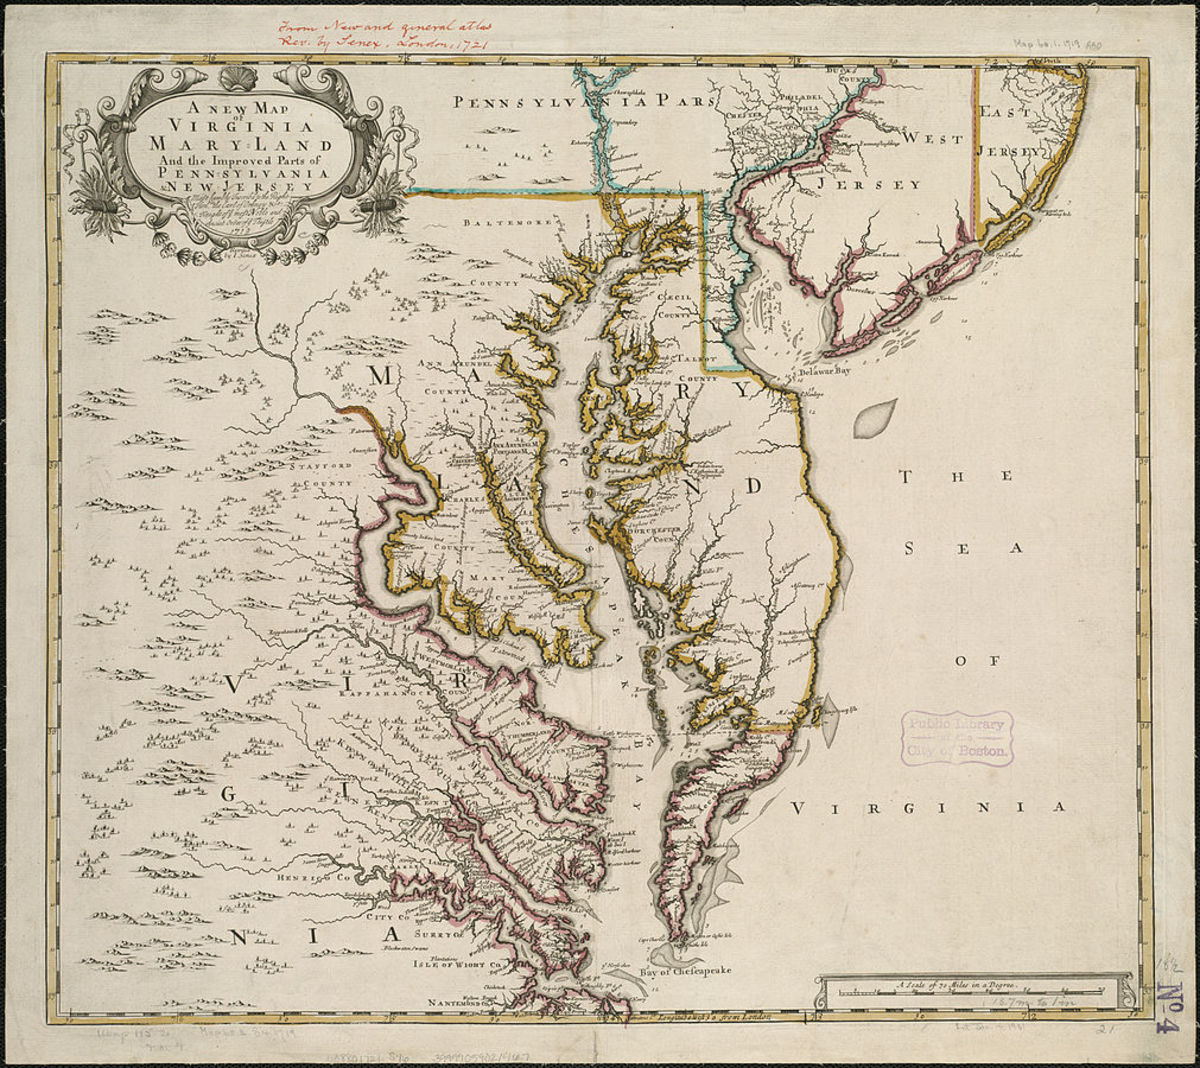 A map of the Virginia Colonies dated 1721.